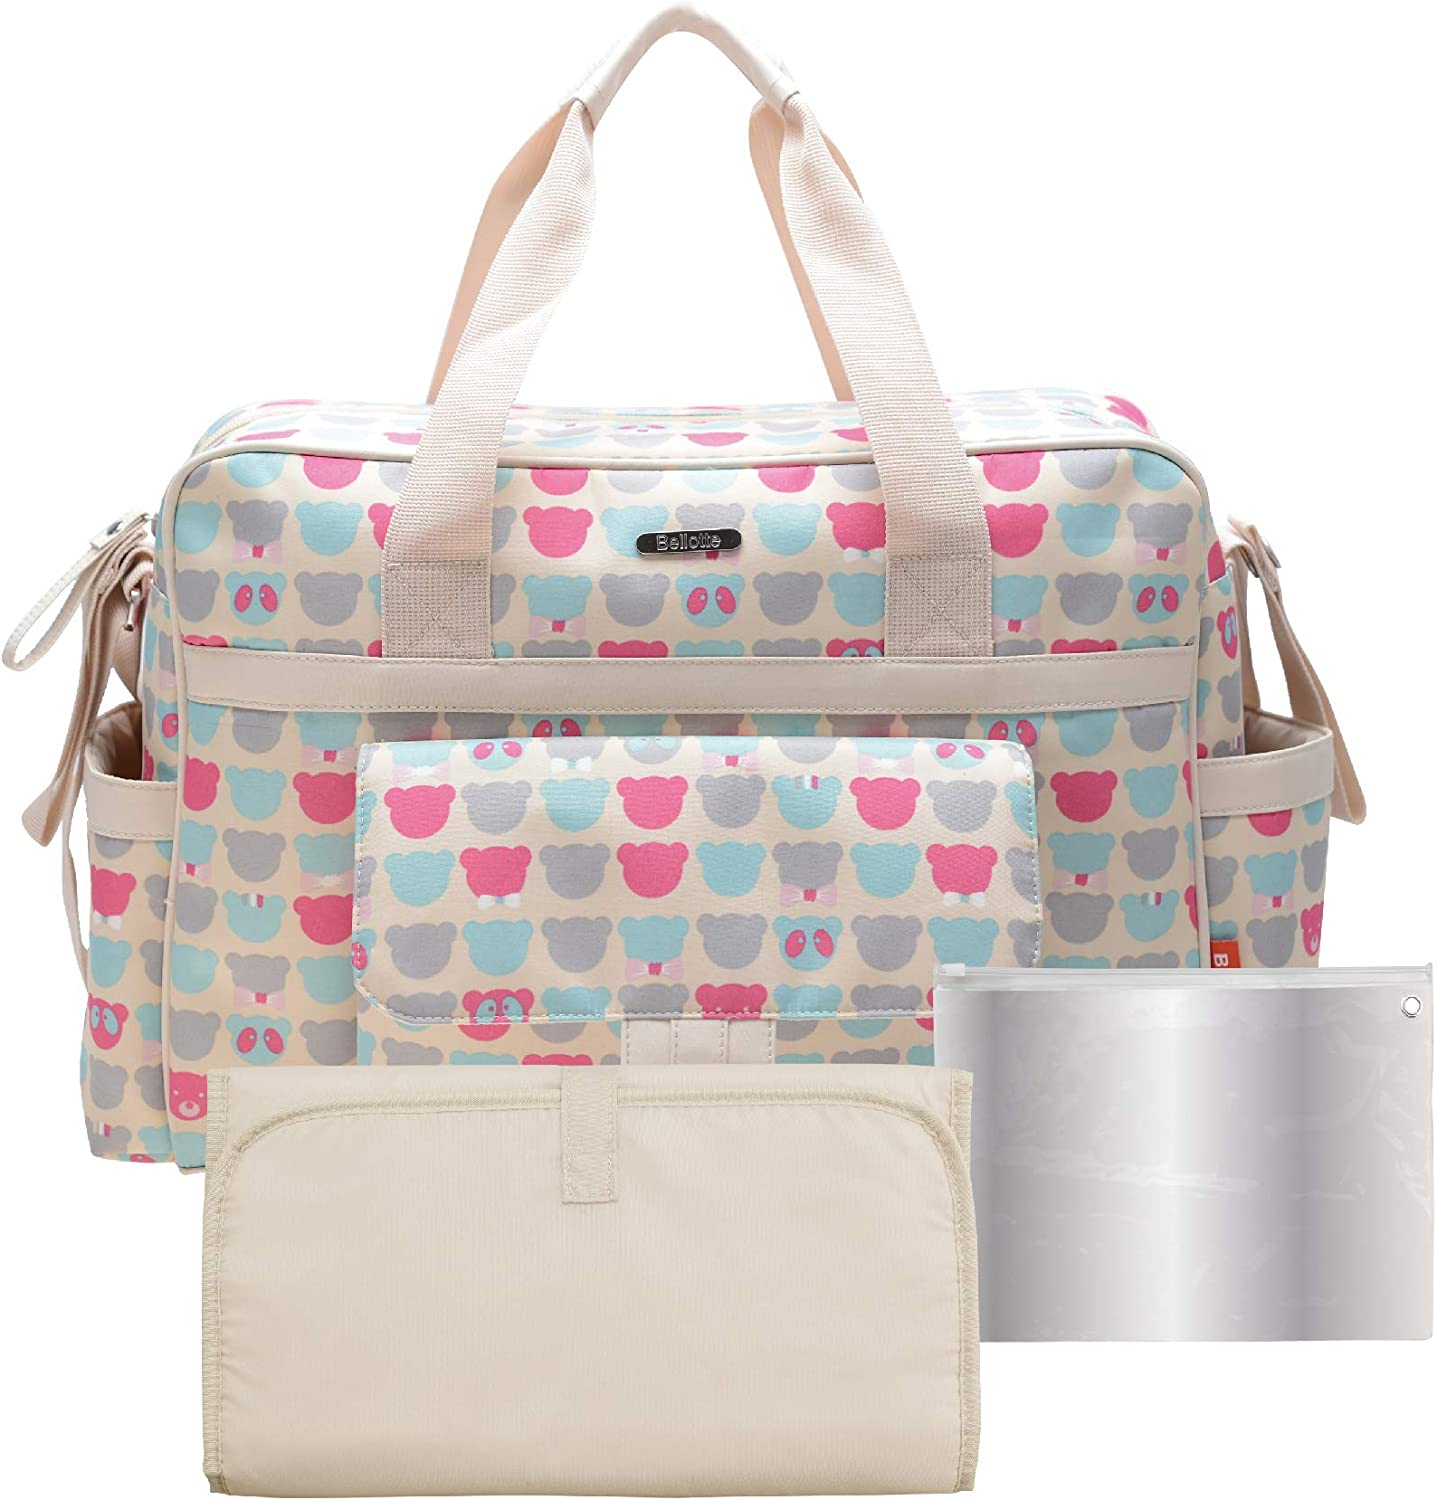 Bellotte Diaper Bag Tote Bags for Girl, Large Capacity, Stylish and Durable